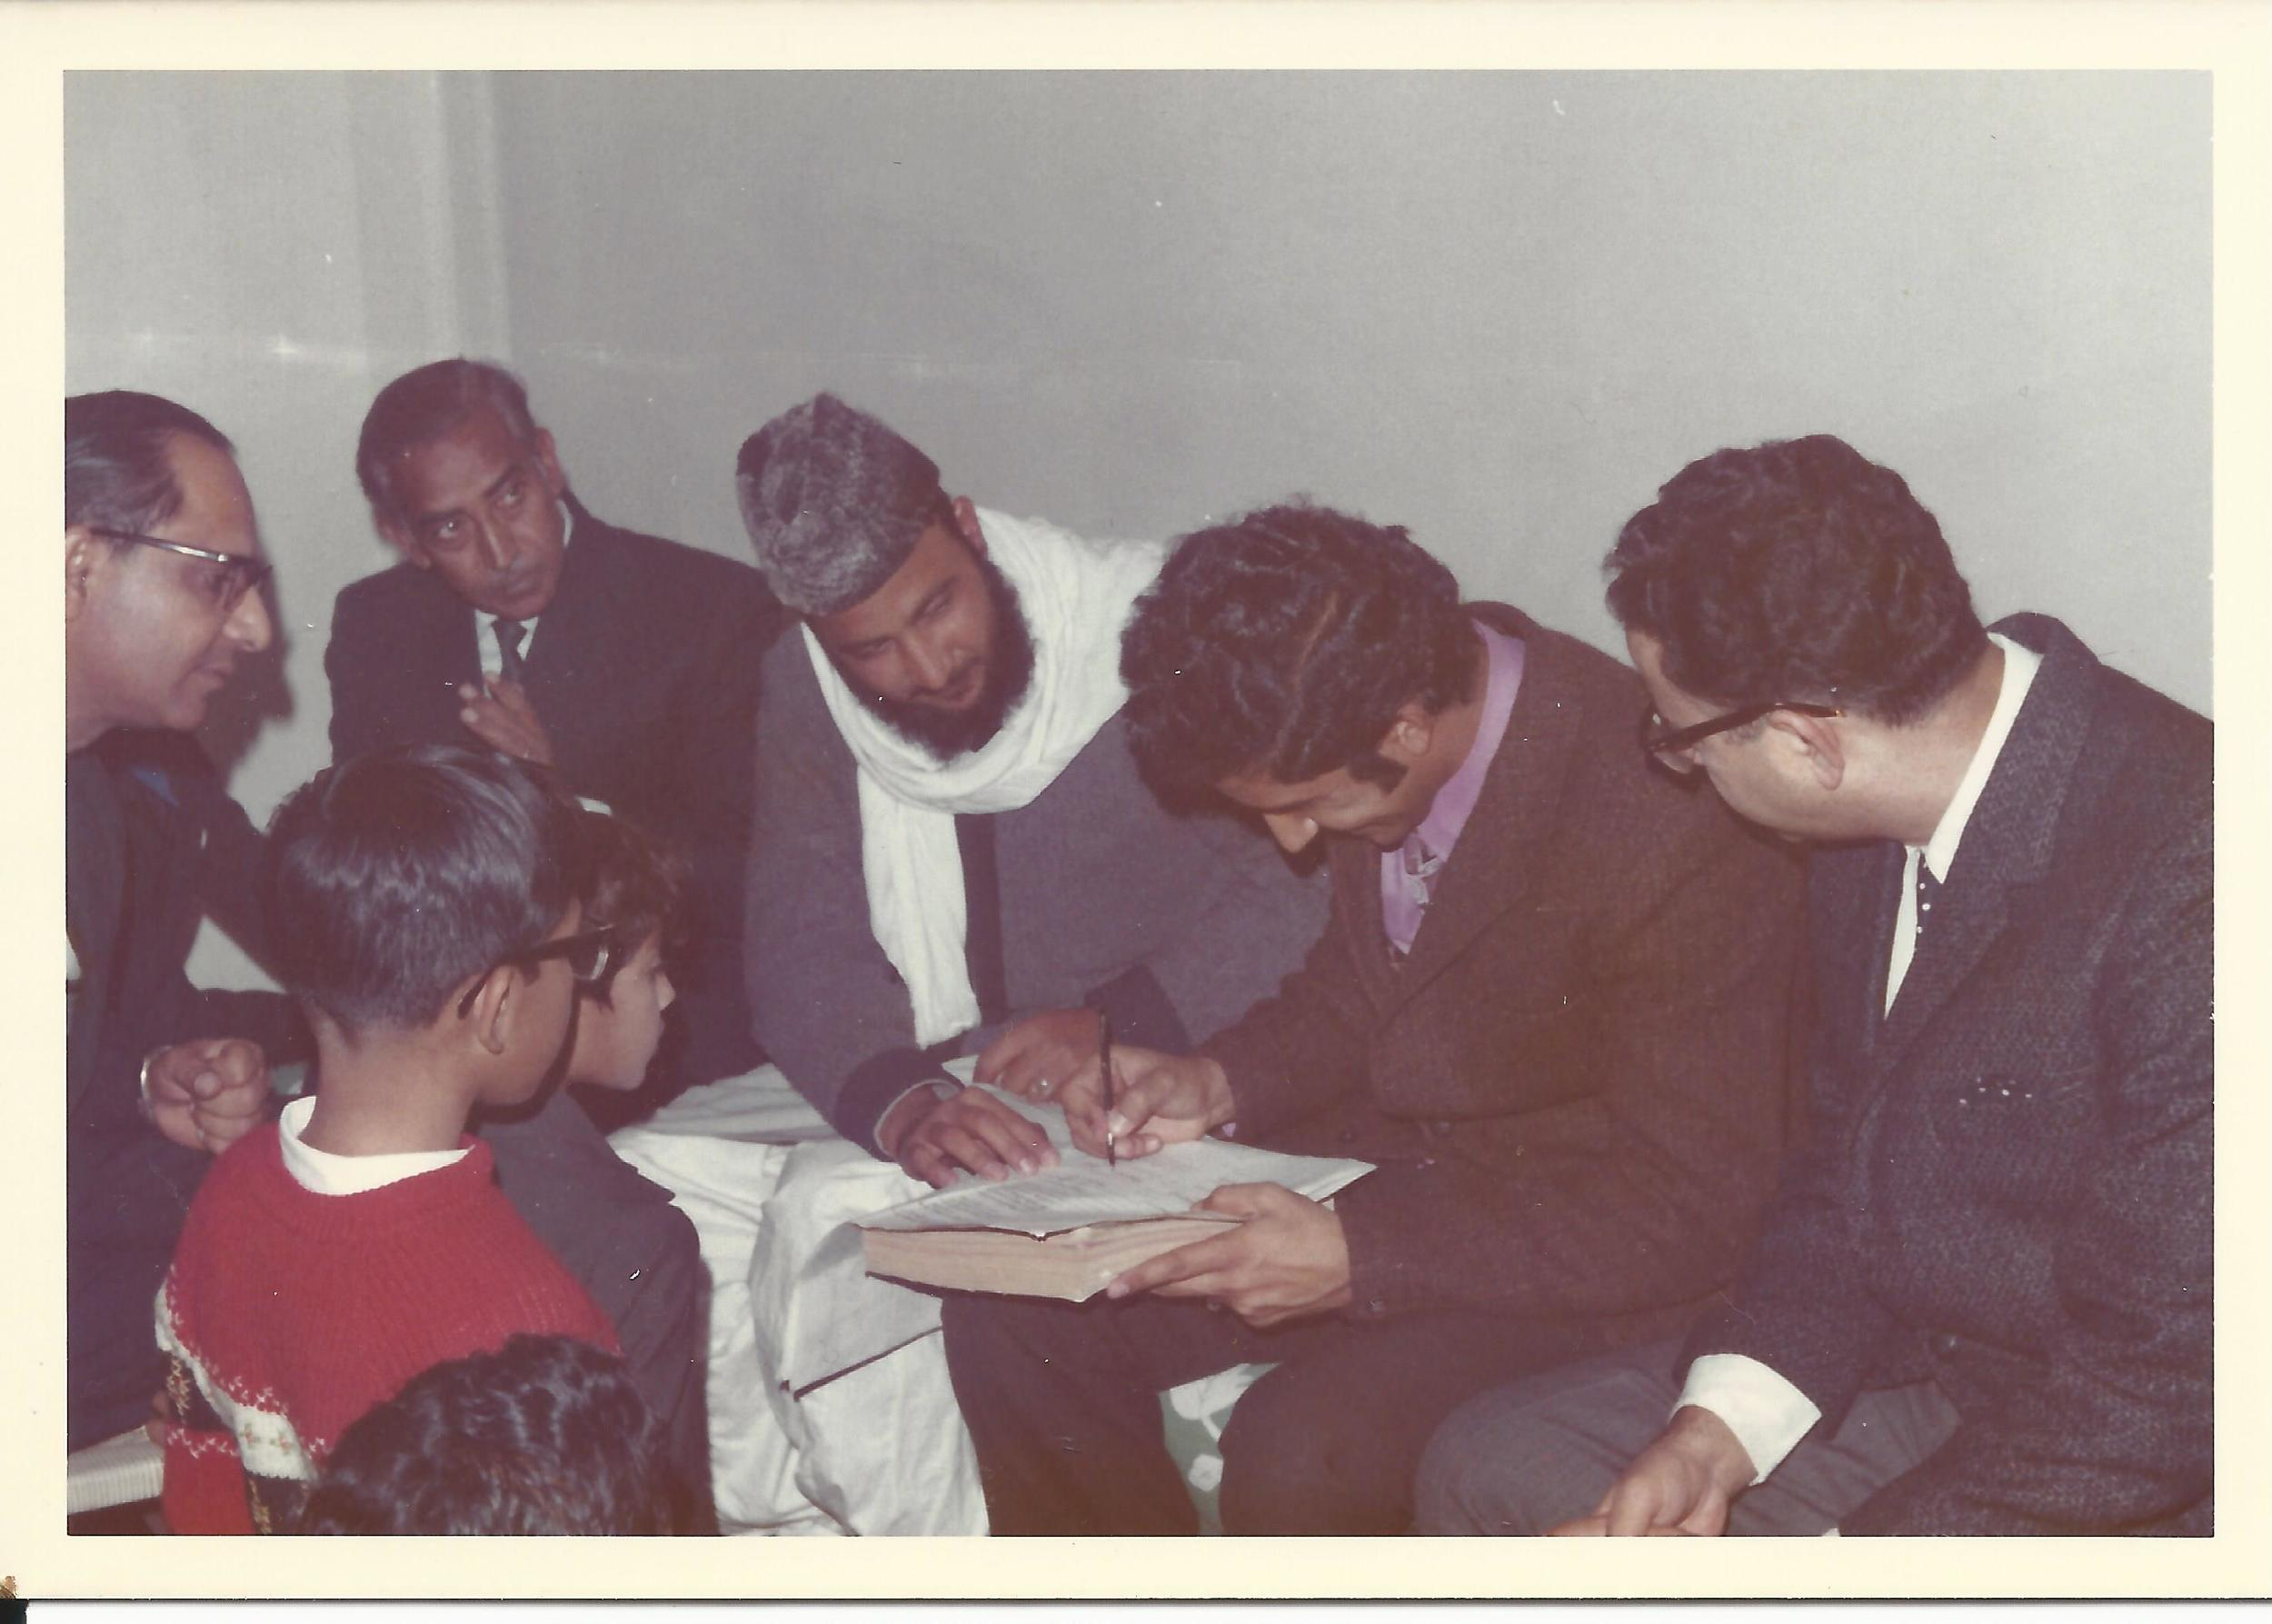 In a separate room, my husband signs the marriage contract